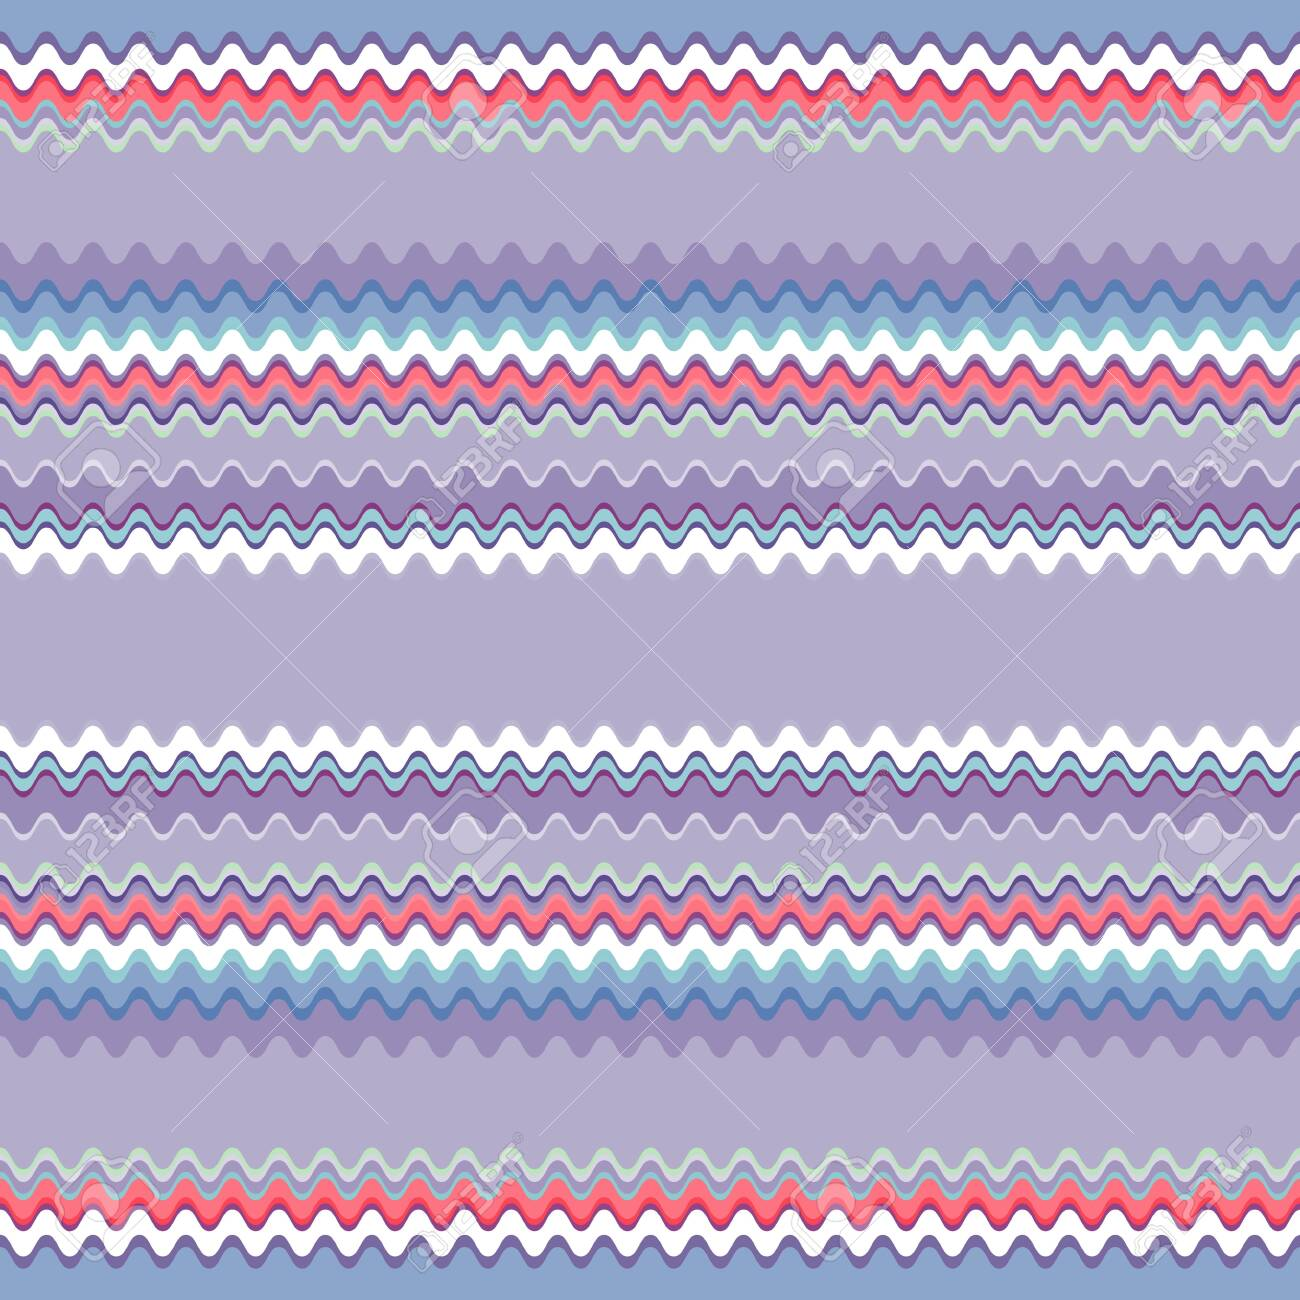 Seamless pattern of horizontal wavy stripes. The pattern is dominated by blue and purple shades. Great for decorating fabrics, textiles, gift wrapping, printed matter, interiors, advertising. - 150141917